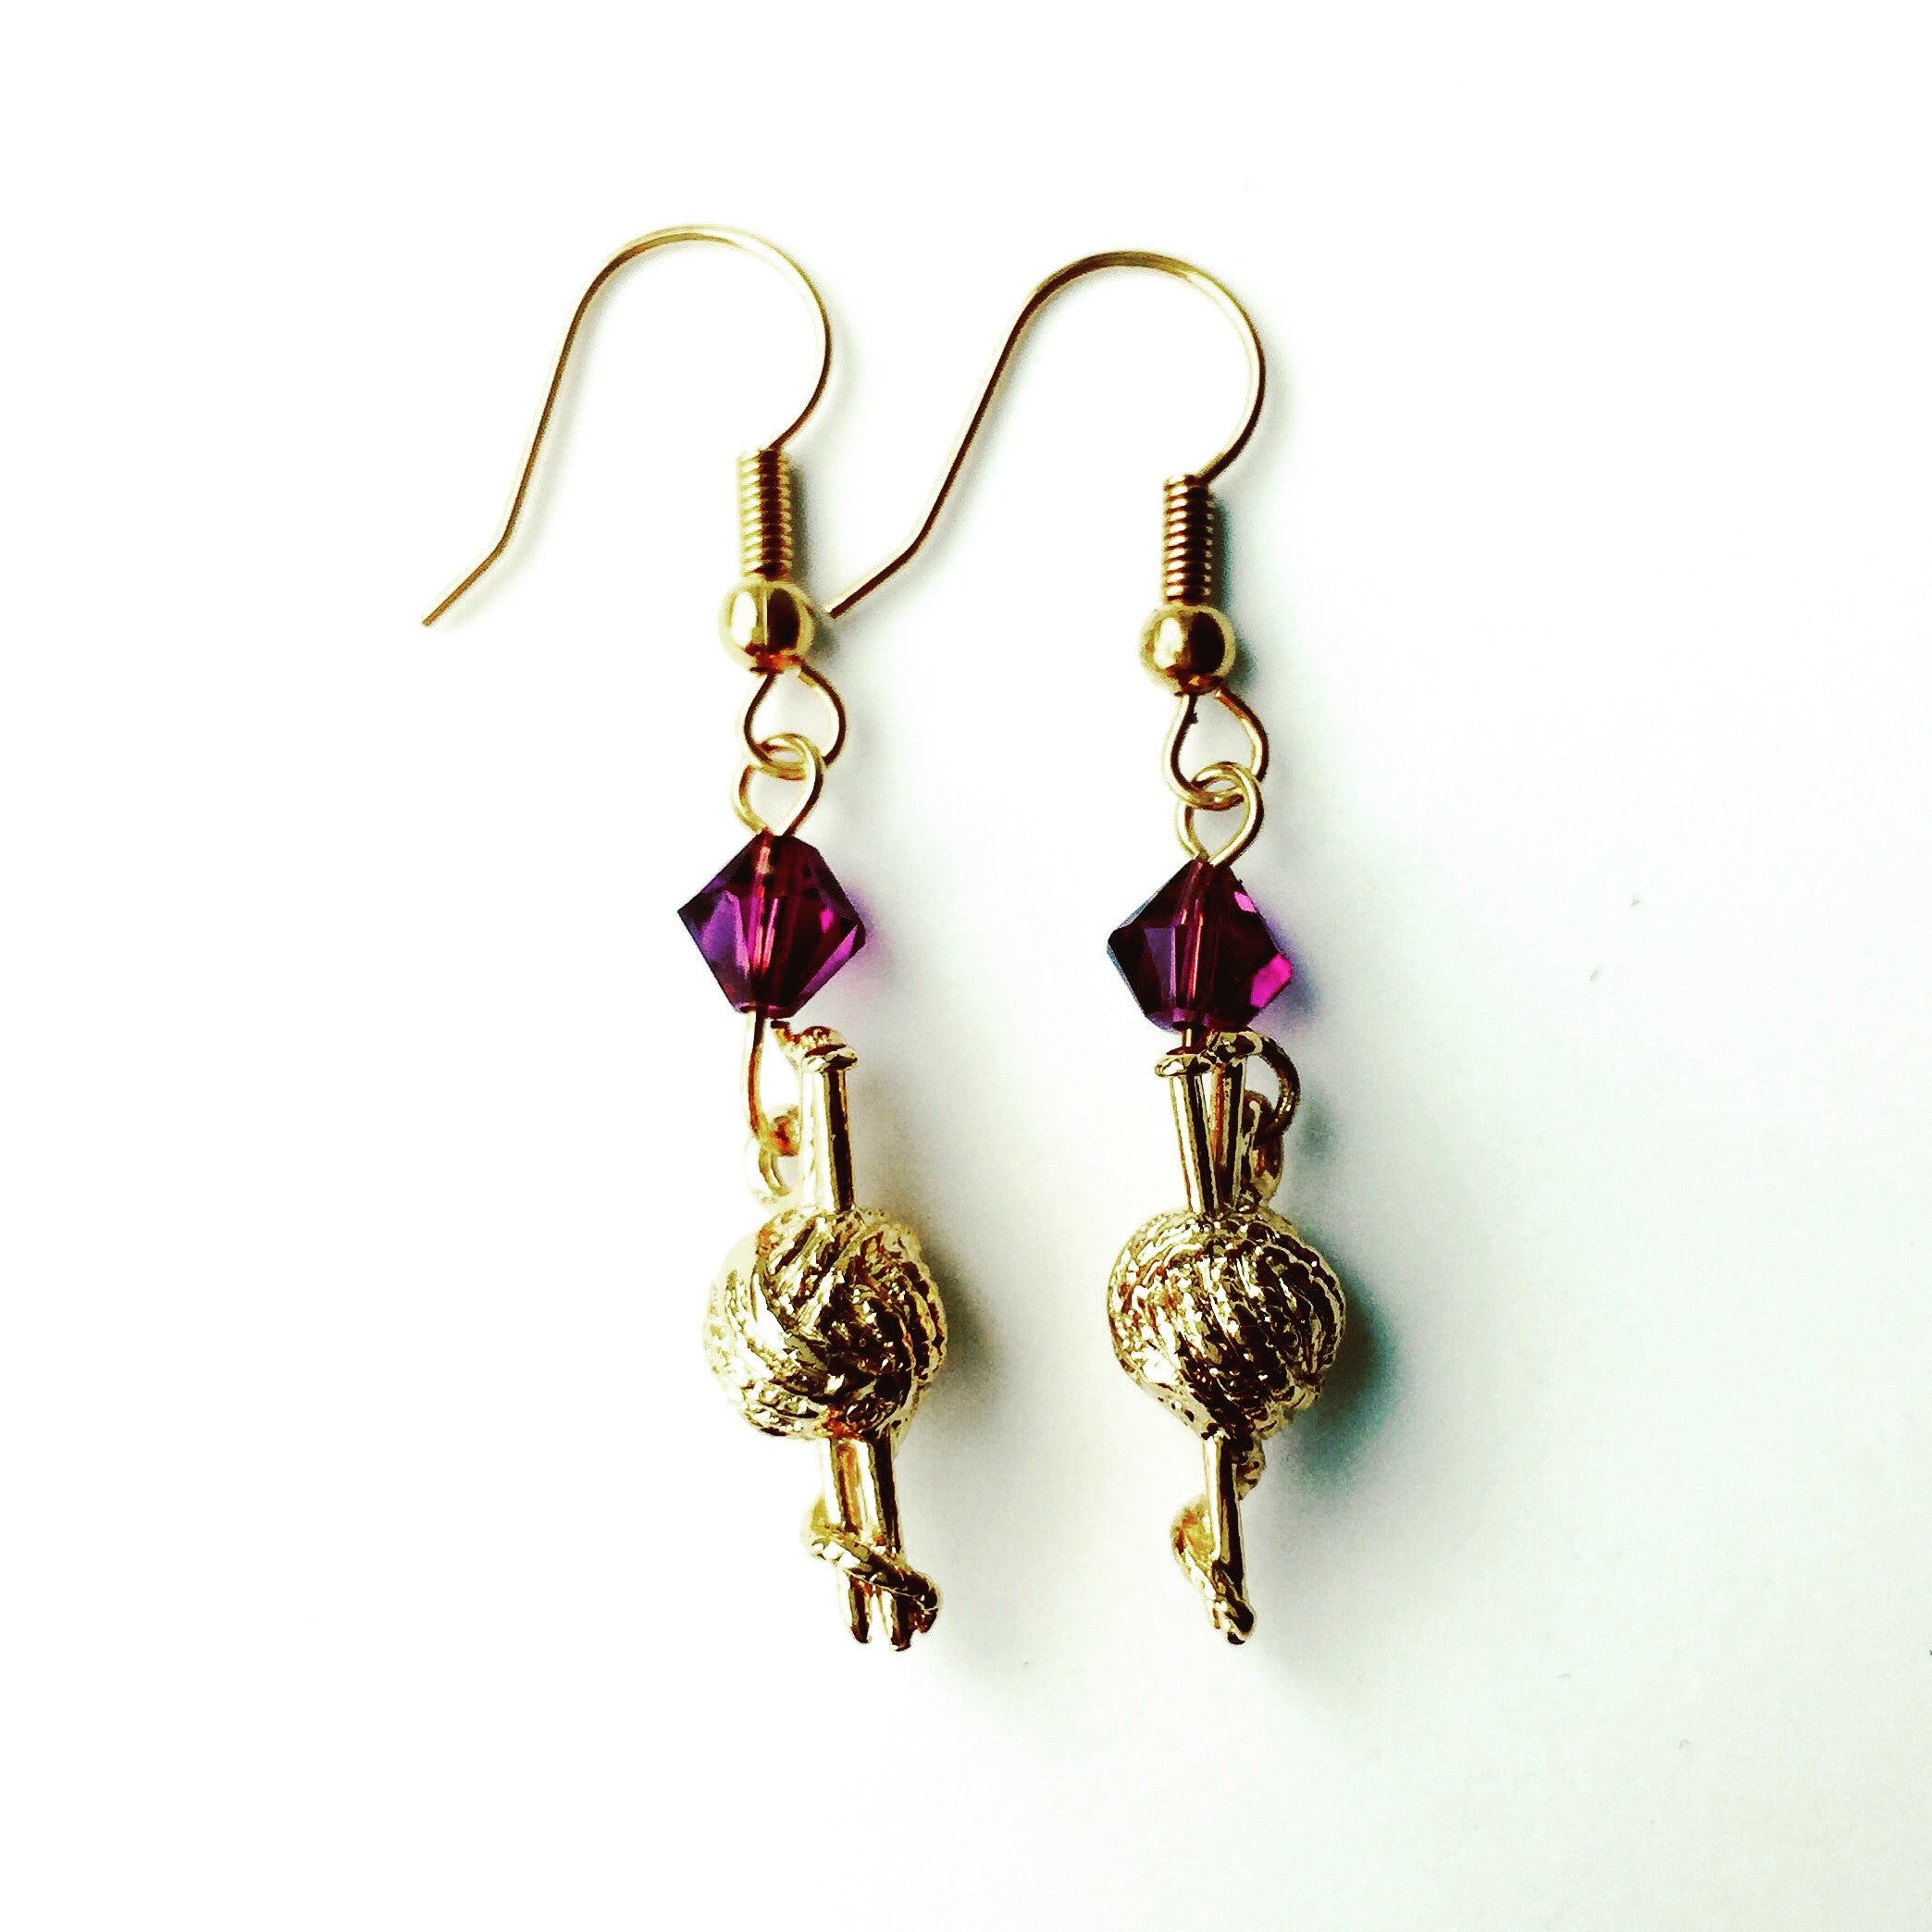 ____ Ball of Thread Gold Earrings with Purple Swarovski Crystals